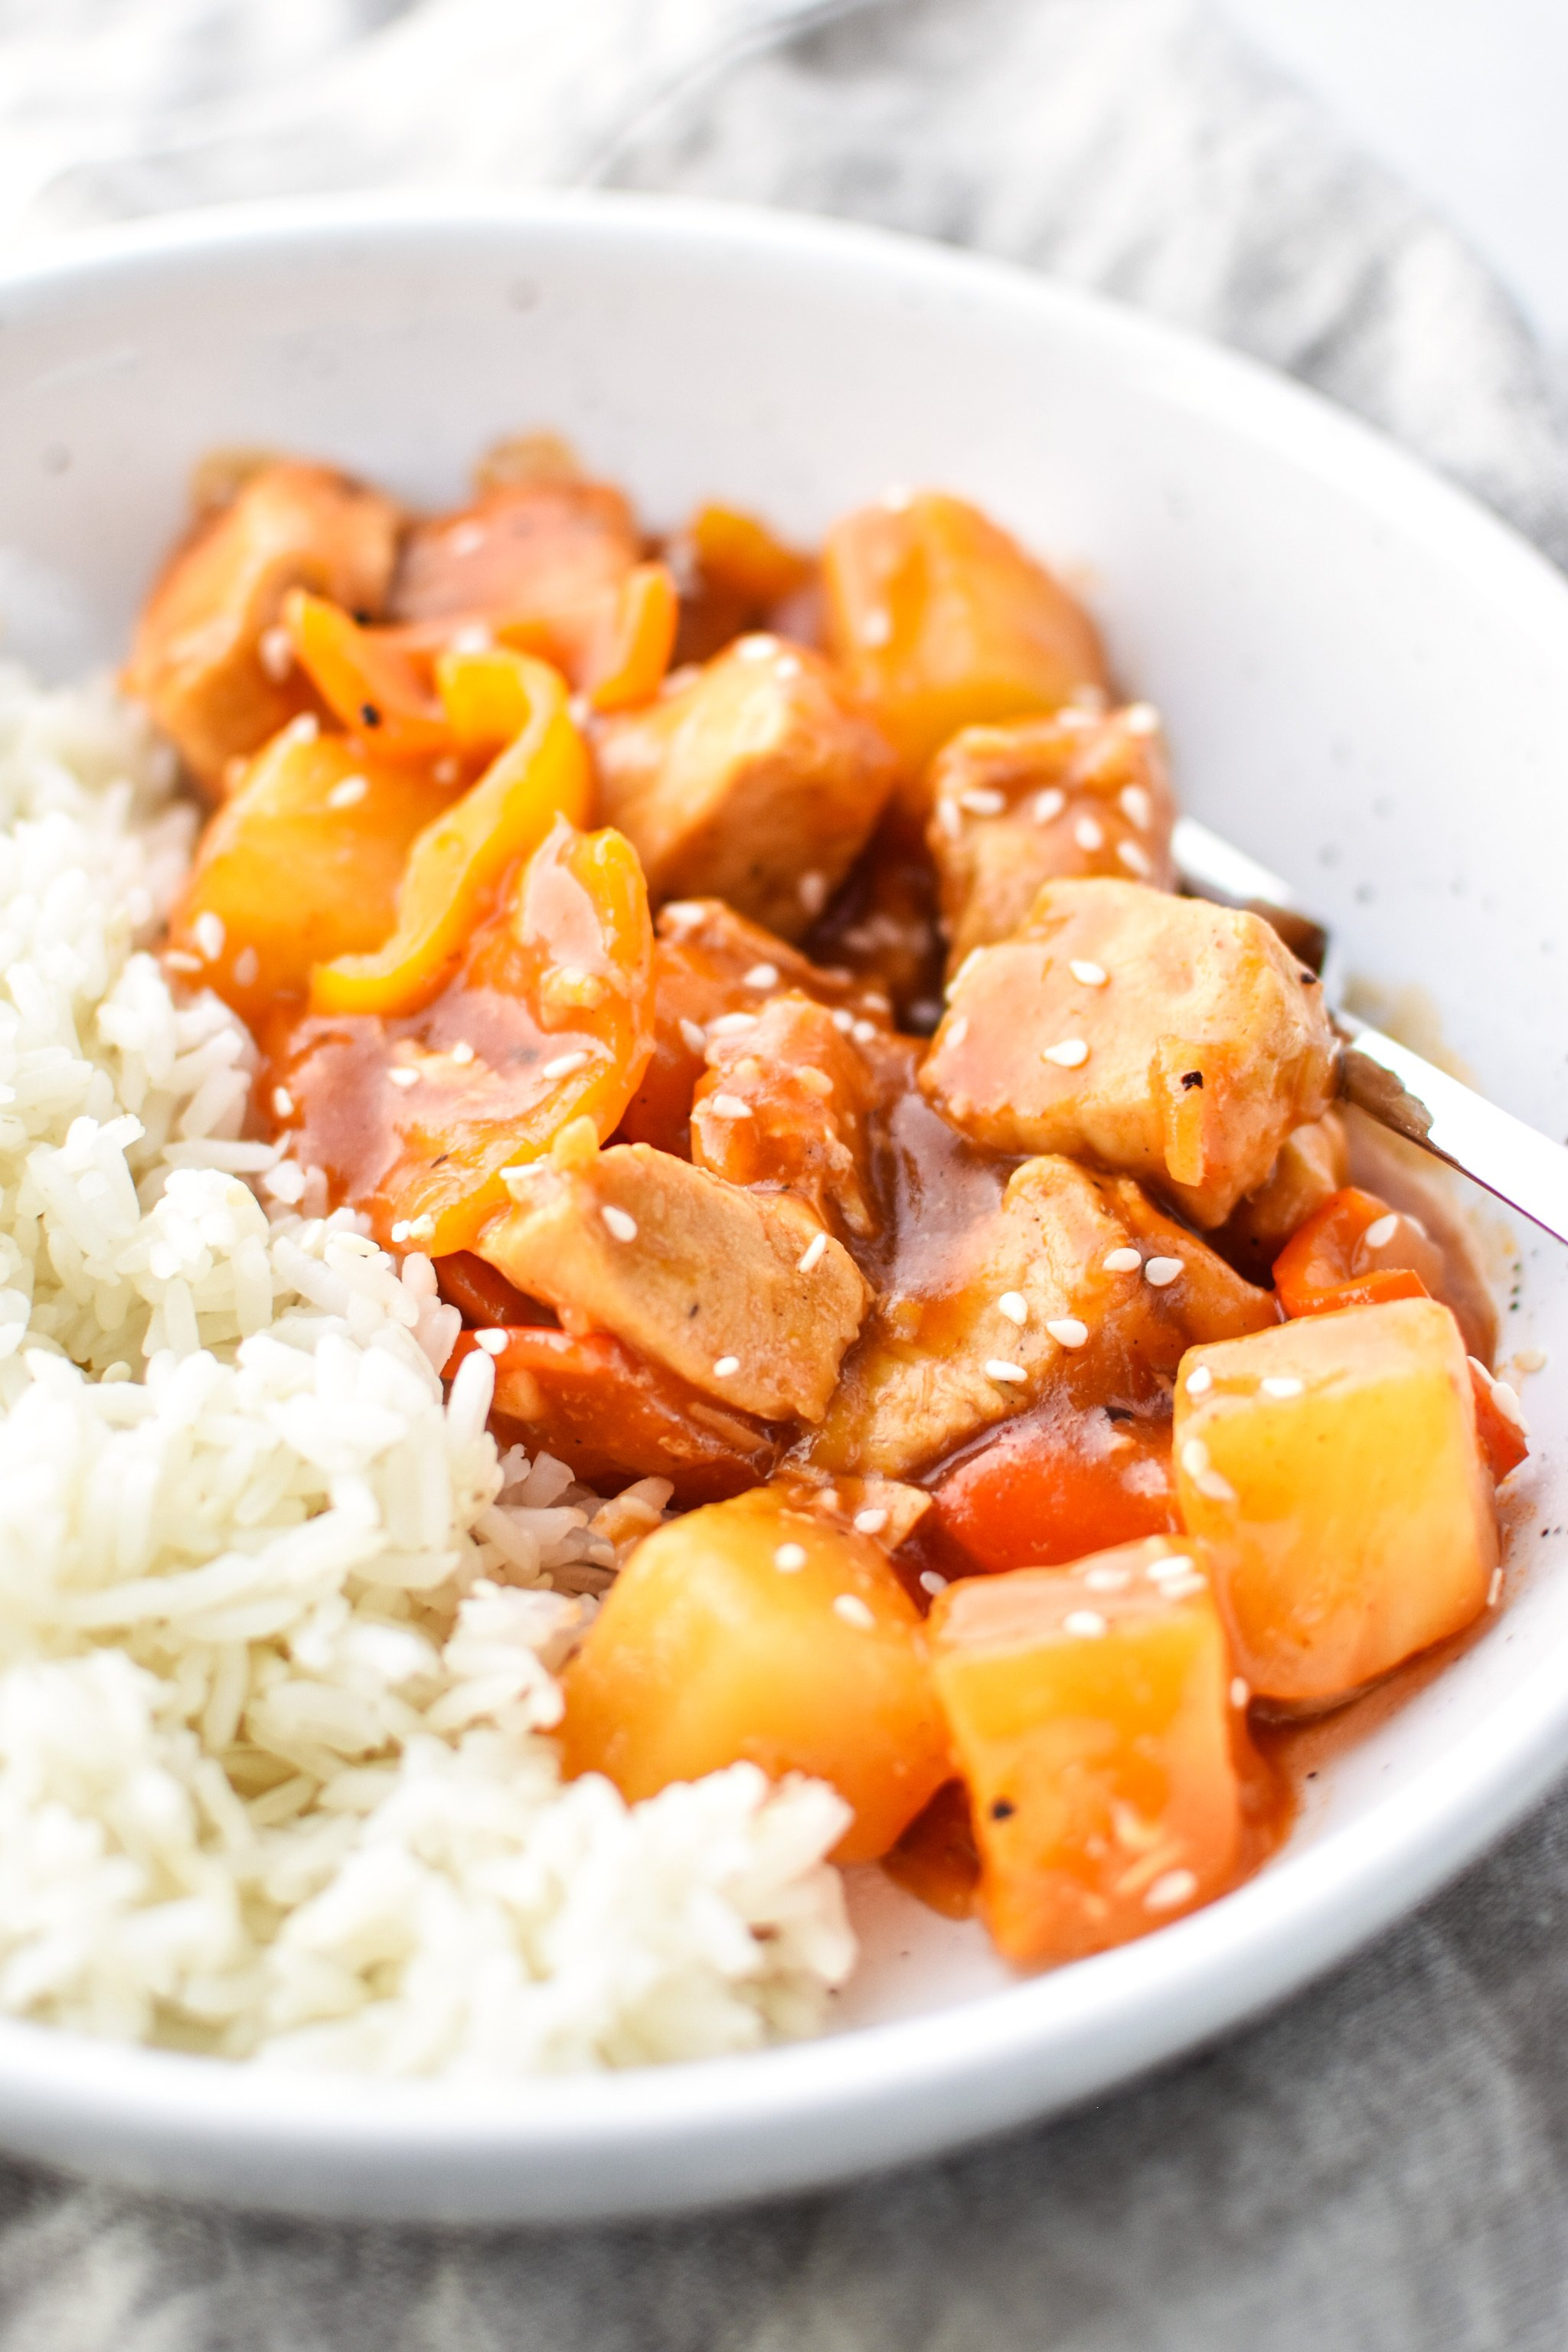 Bowl of Sweet Ginger BBQ Chicken Meal Prep from the side with rice.